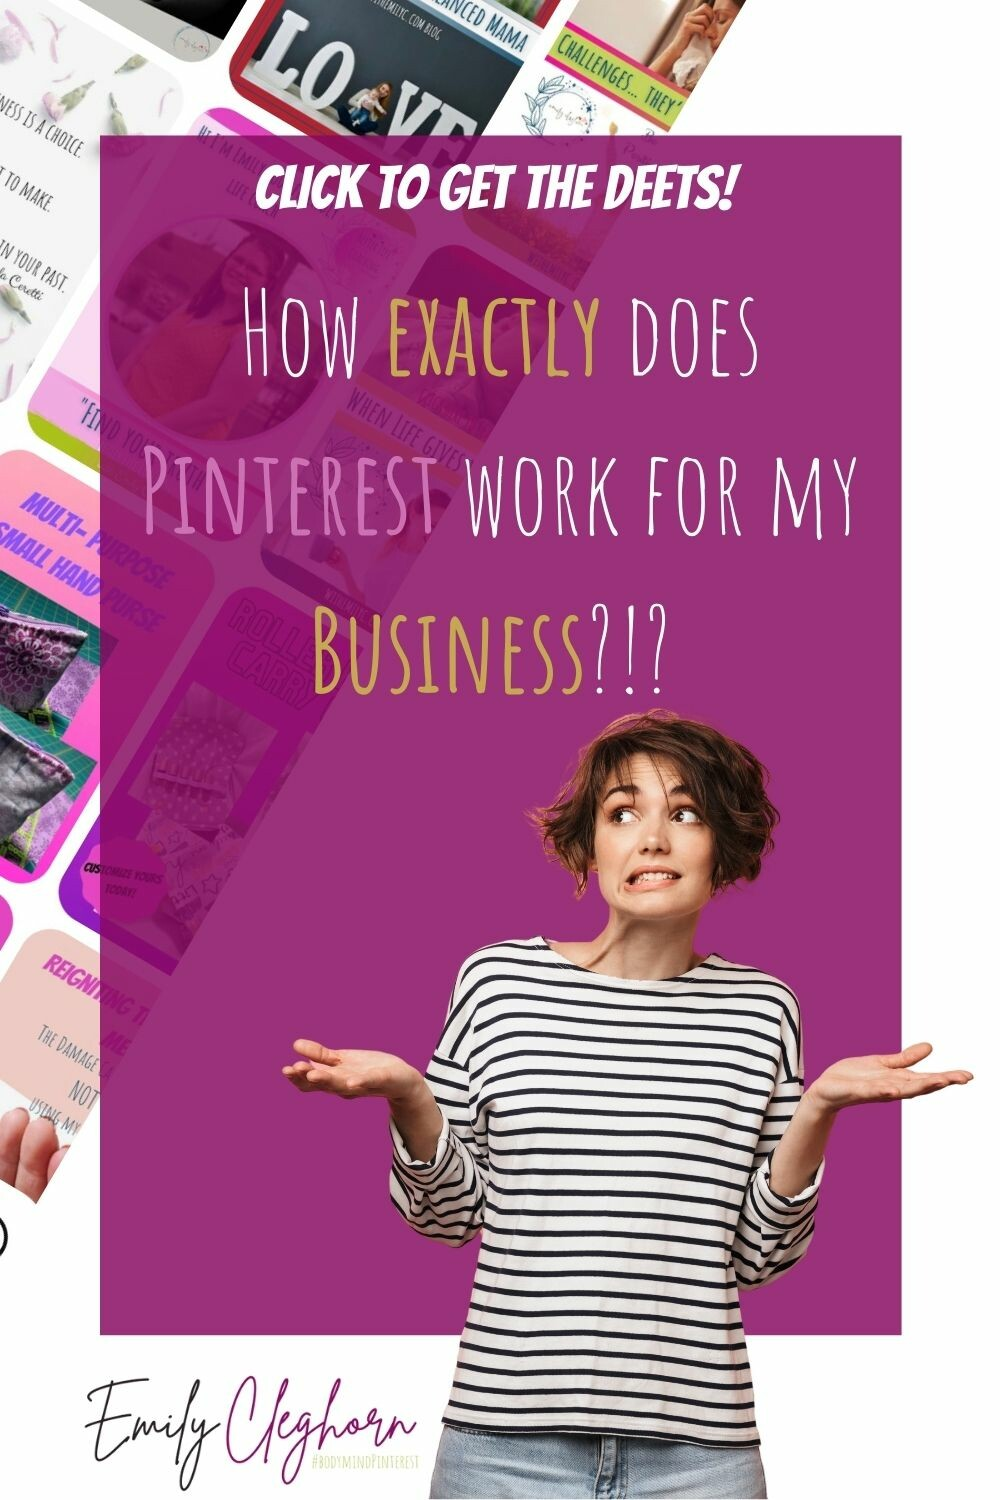 How exactly does Pinterest work for my Business?!?